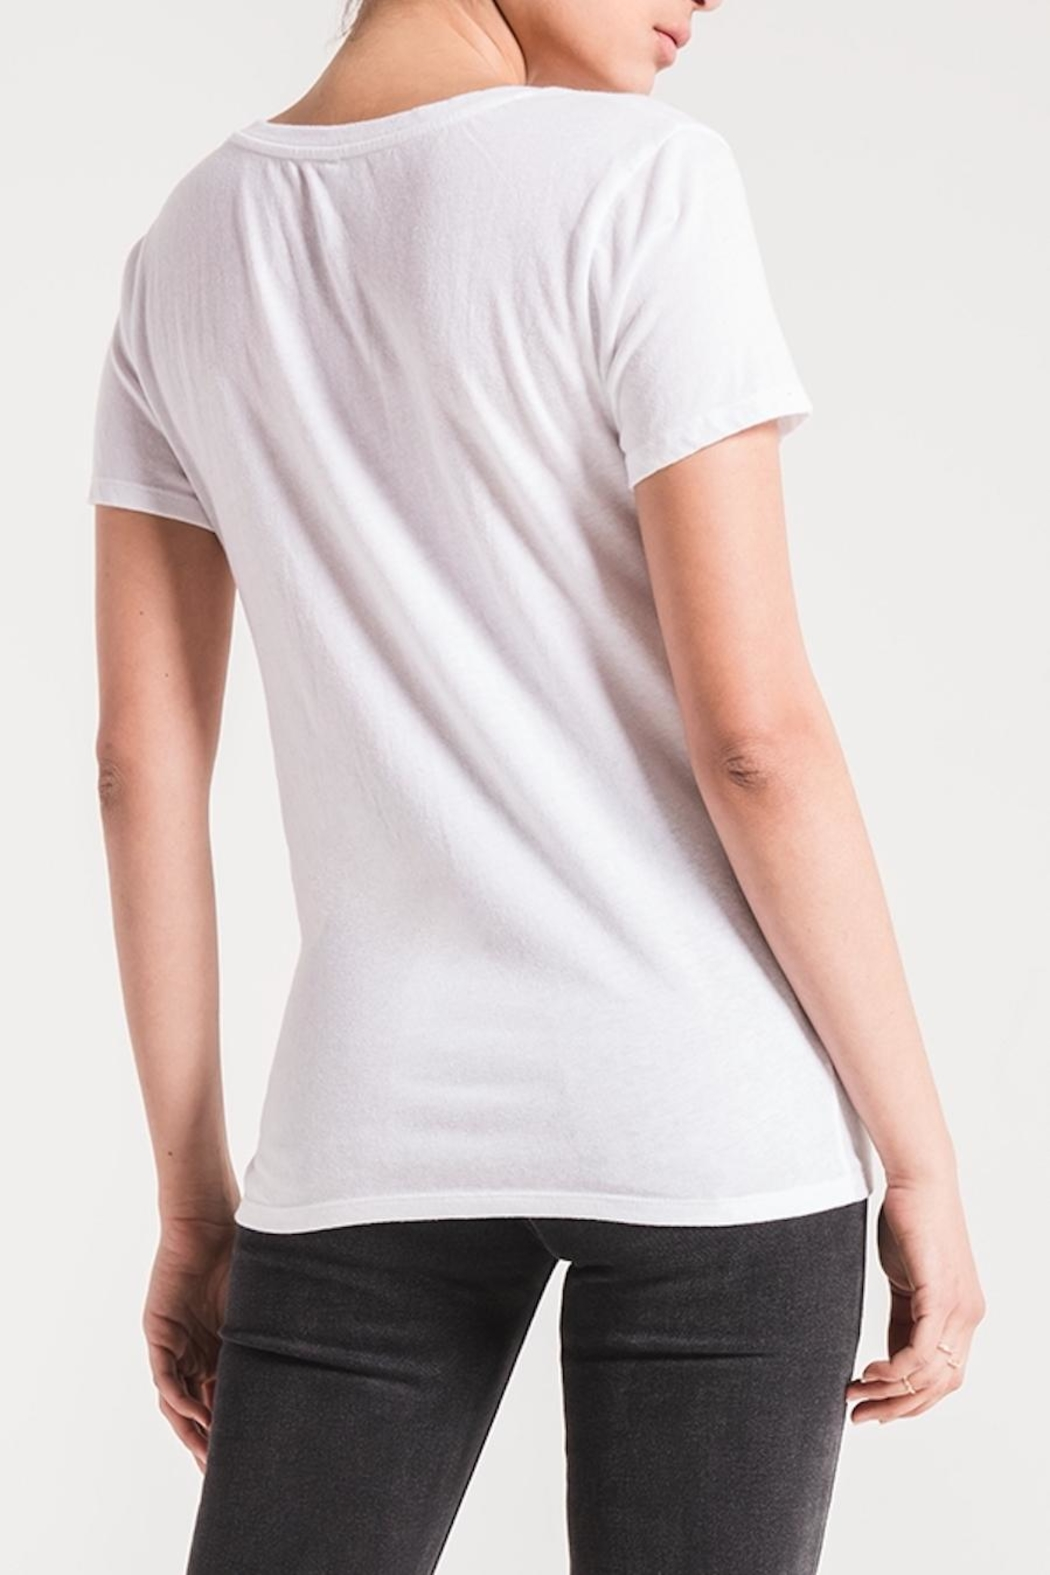 z supply Twist Front Tee - Front Full Image